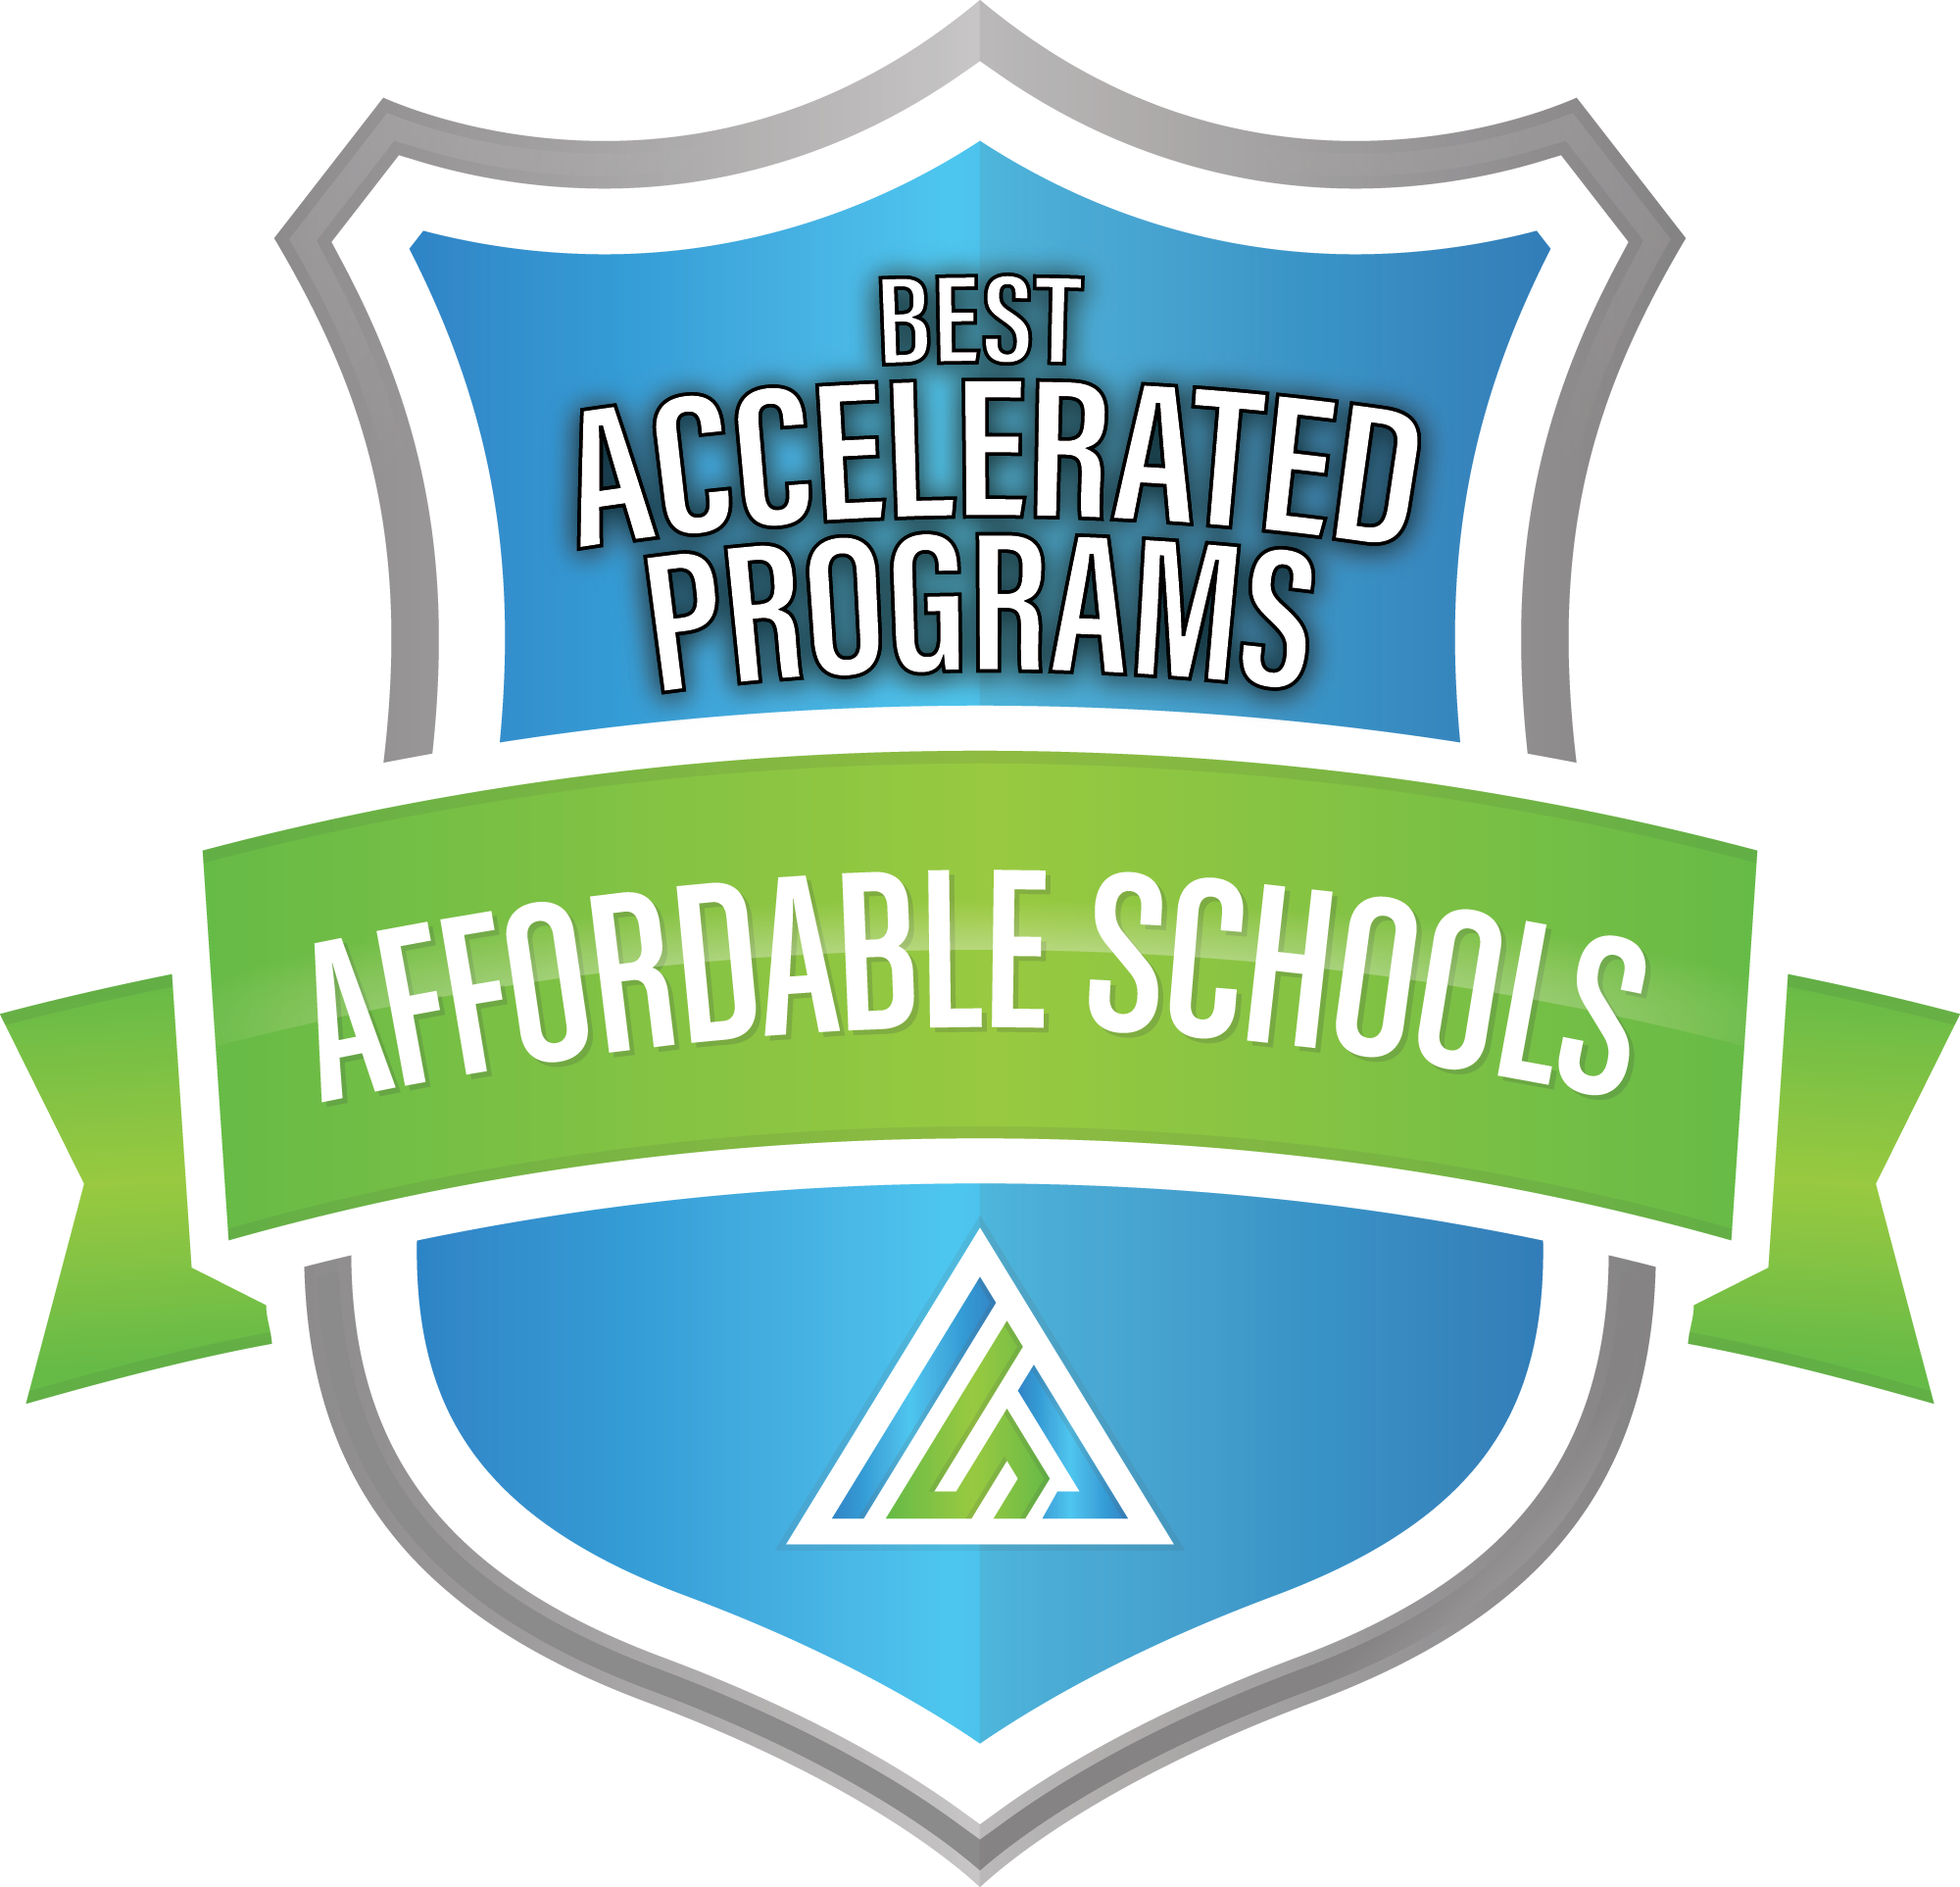 40 Best Affordable Accelerated 4+1 Bachelor's to Master's Degree Programs  2020 - Affordable Schools